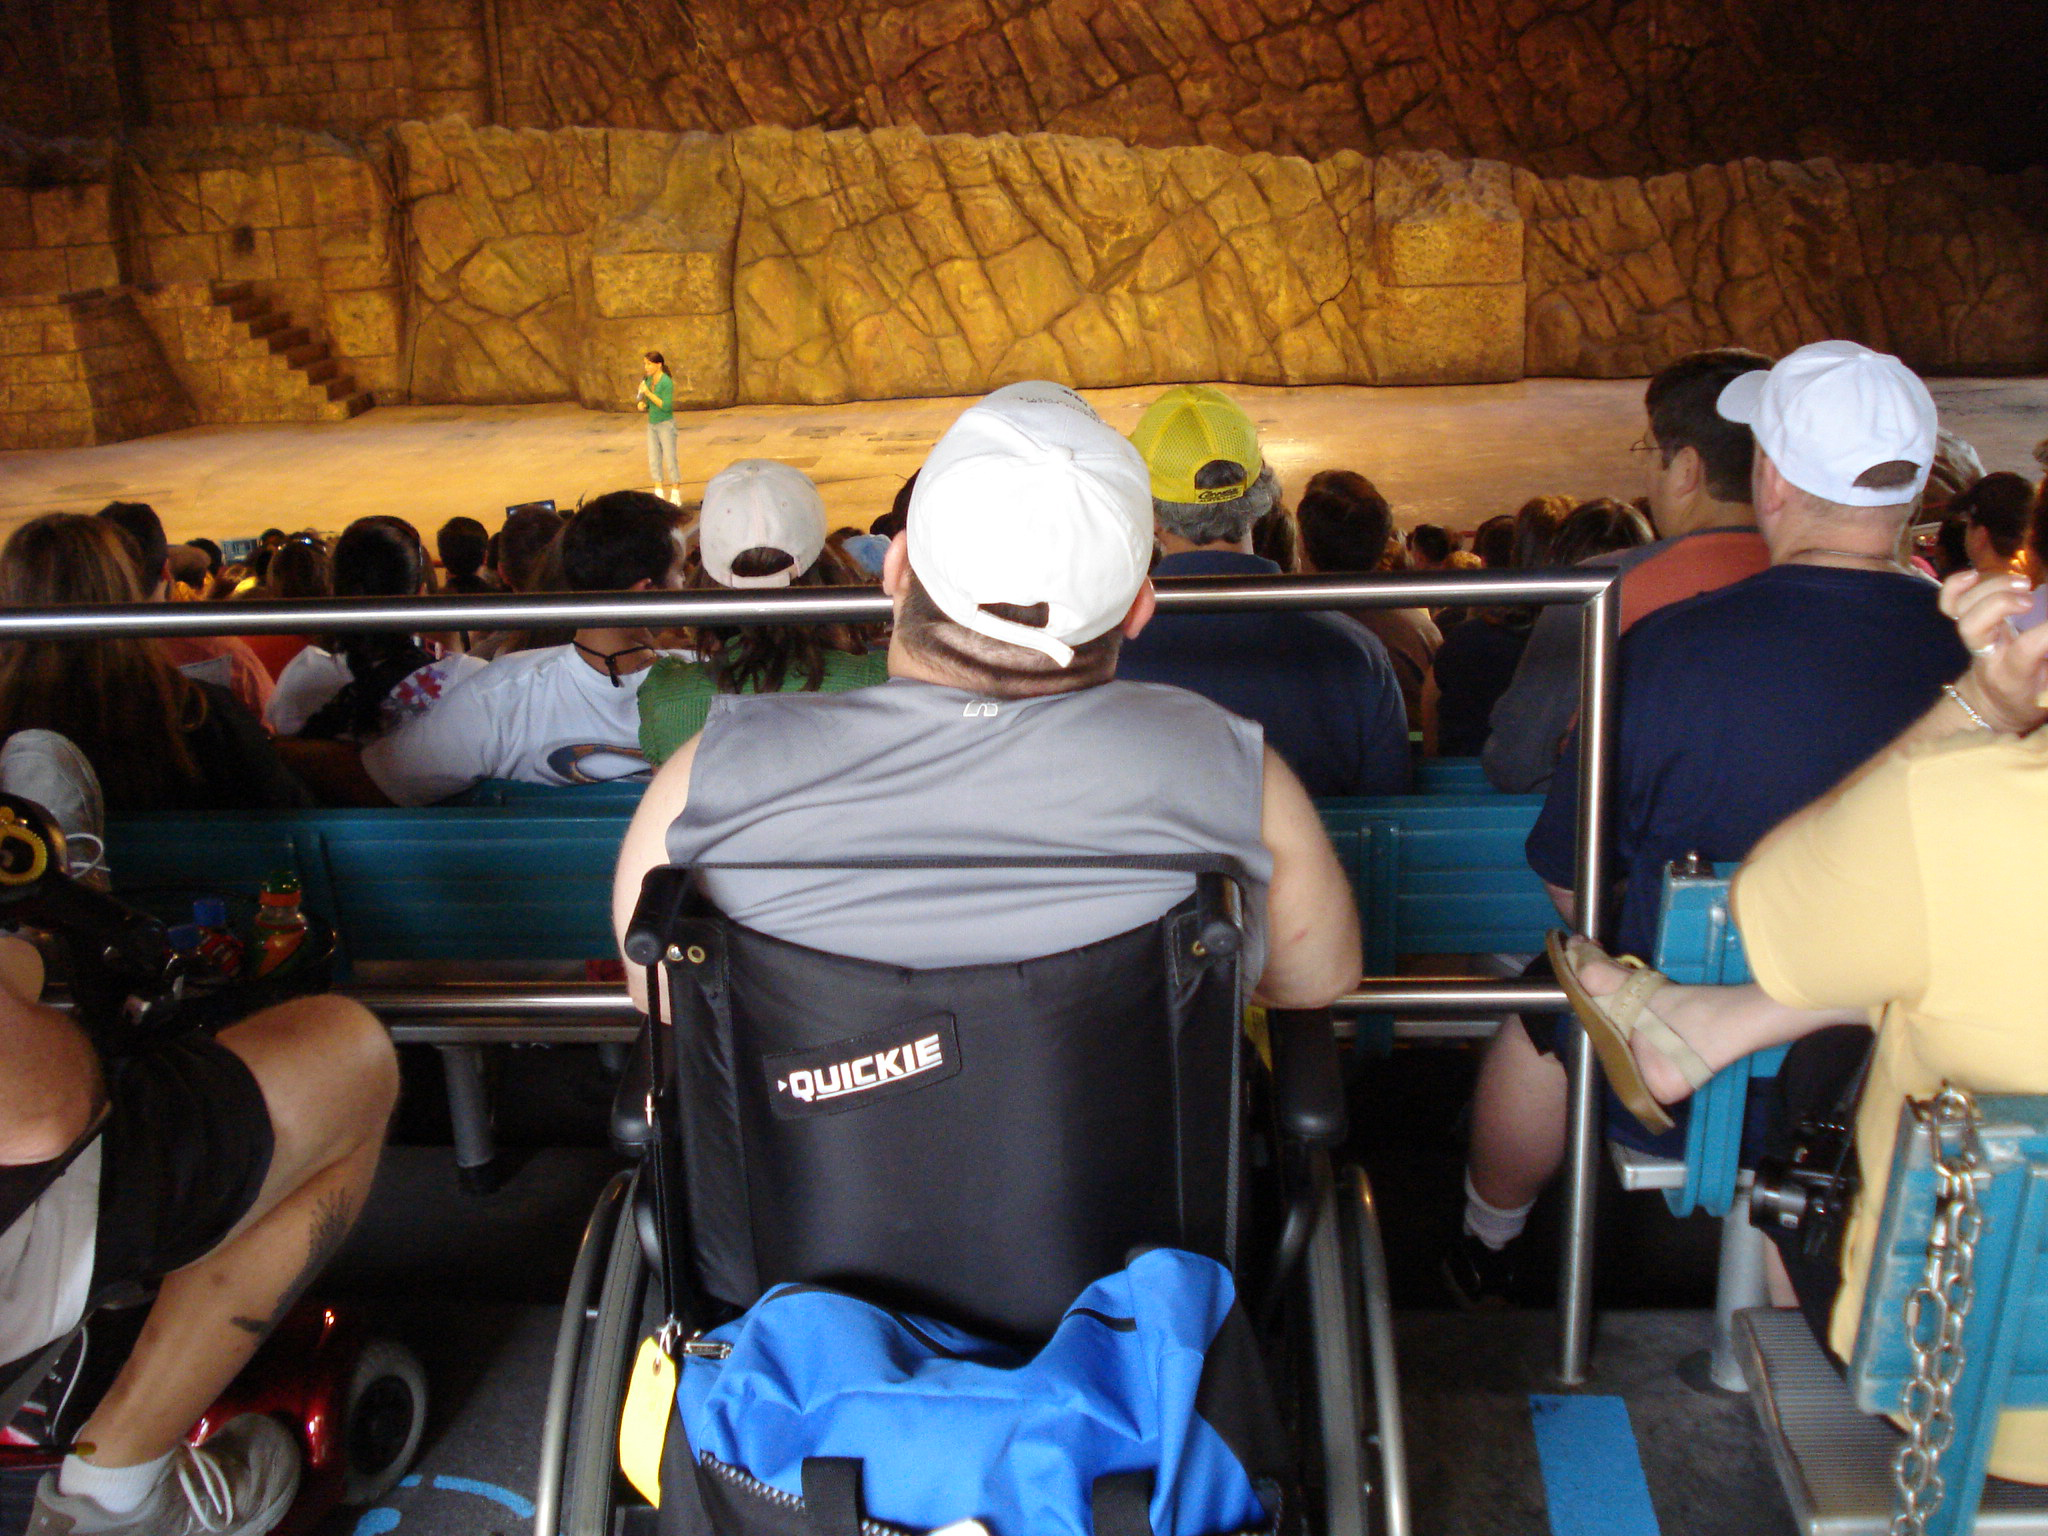 Indiana Jones wheelchair seating in the rear